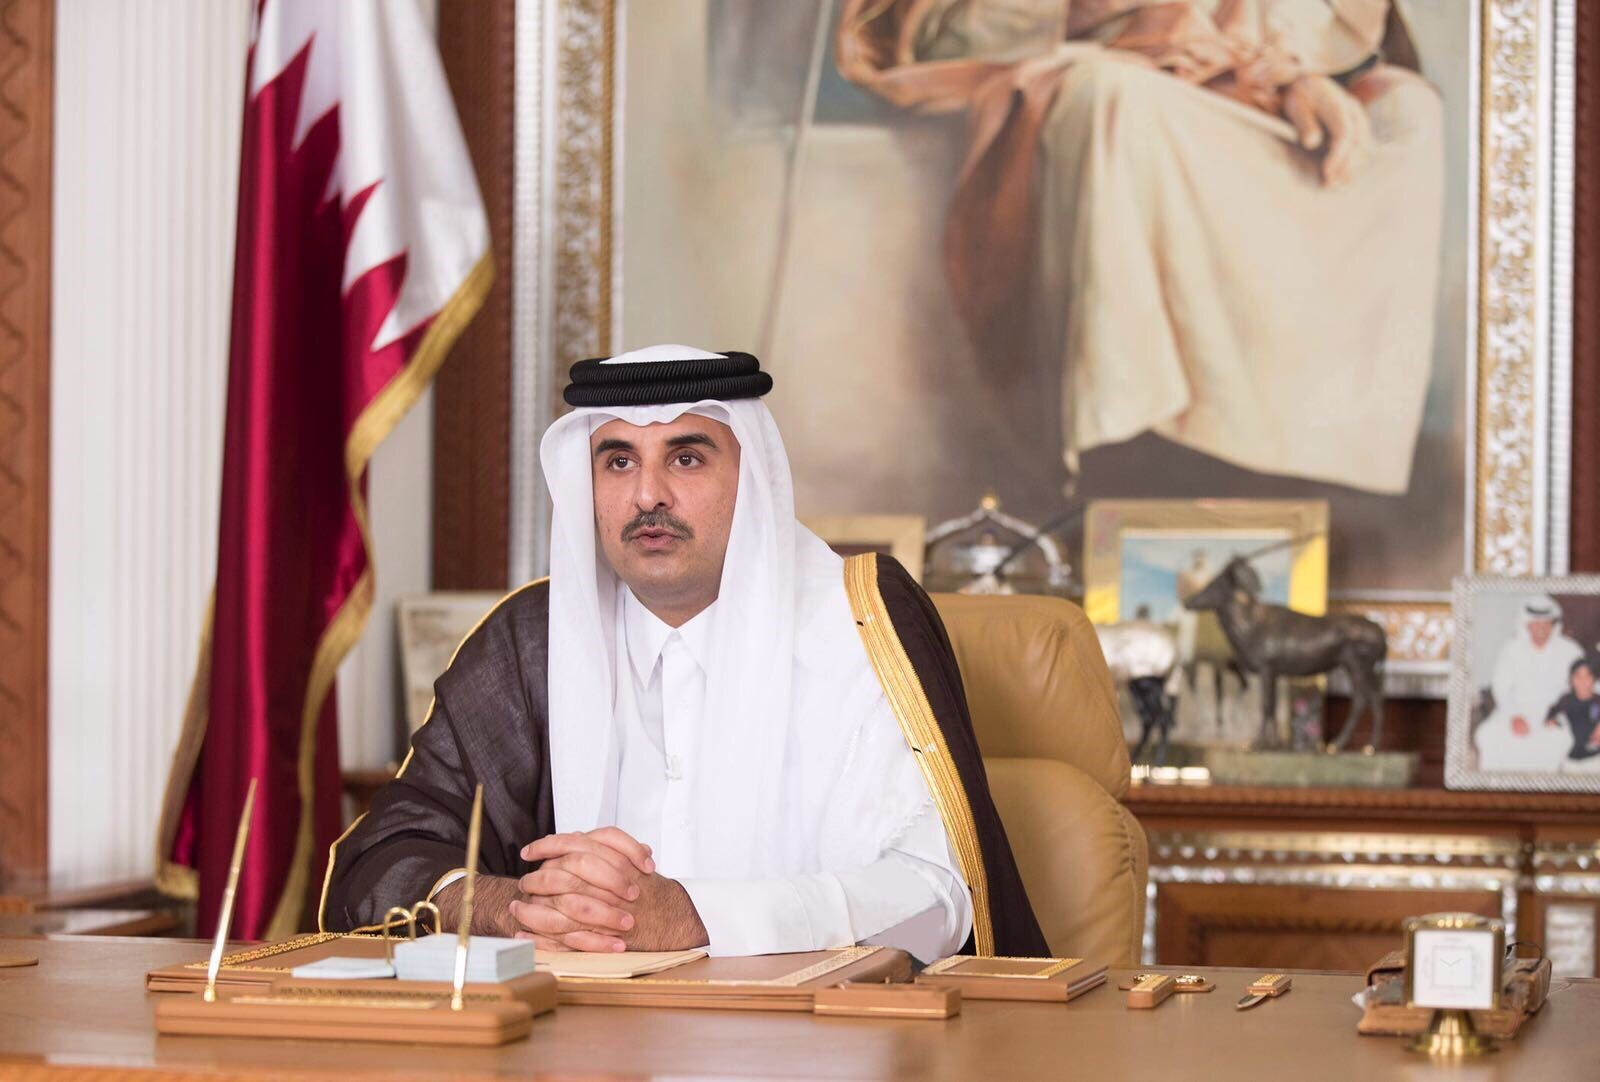 Emir of Qatar Sheikh Tamim bin Hamad Al Thani delivers a speech on National television, in Doha, Qatar on July 22, 2017.